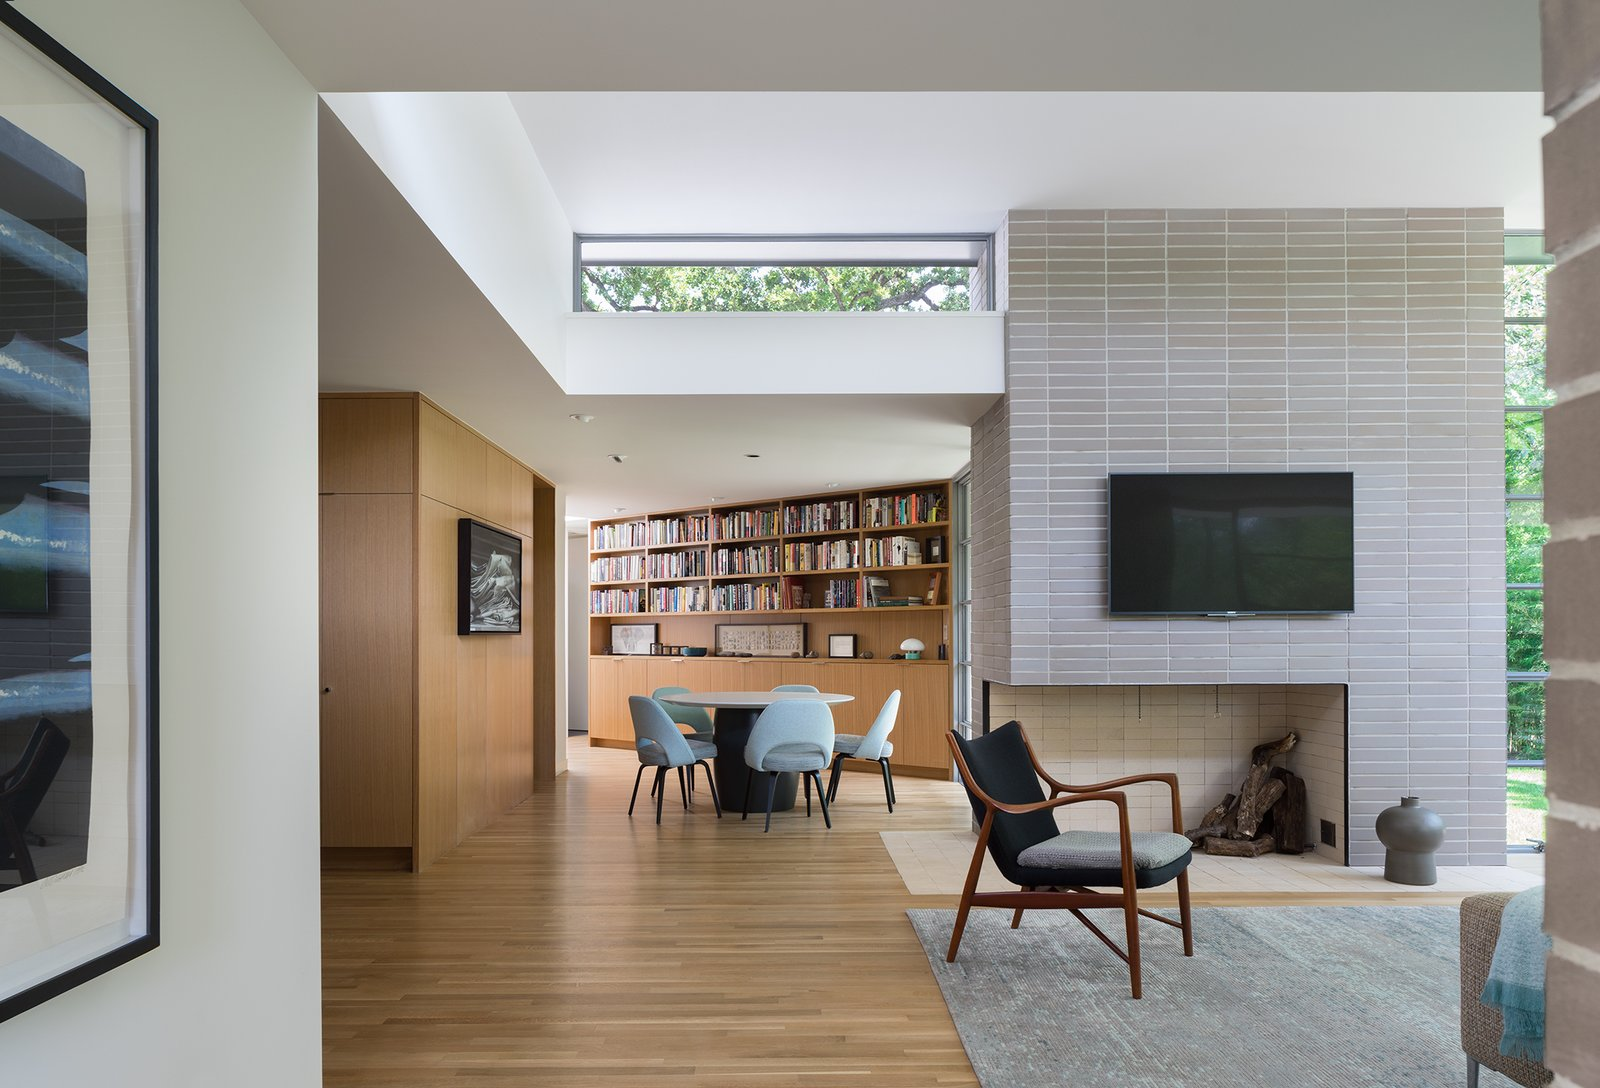 Living Room, Corner Fireplace, Recessed Lighting, and Chair  Inwood Place by Tim Cuppett Architects